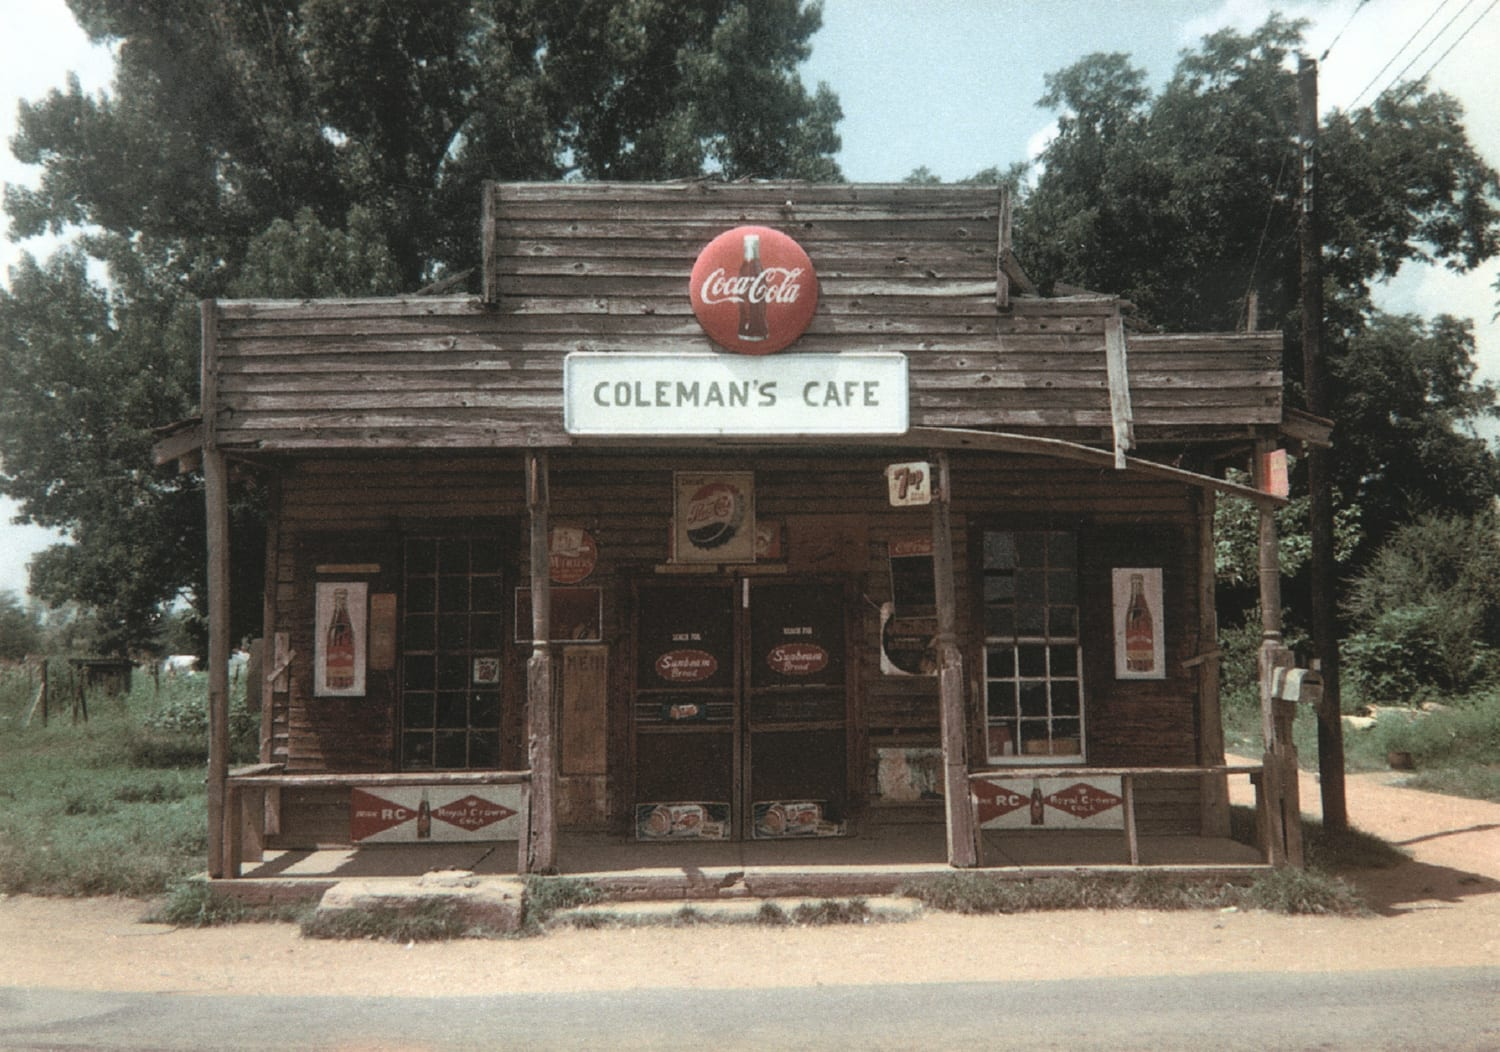 From the series Coleman's Cafe